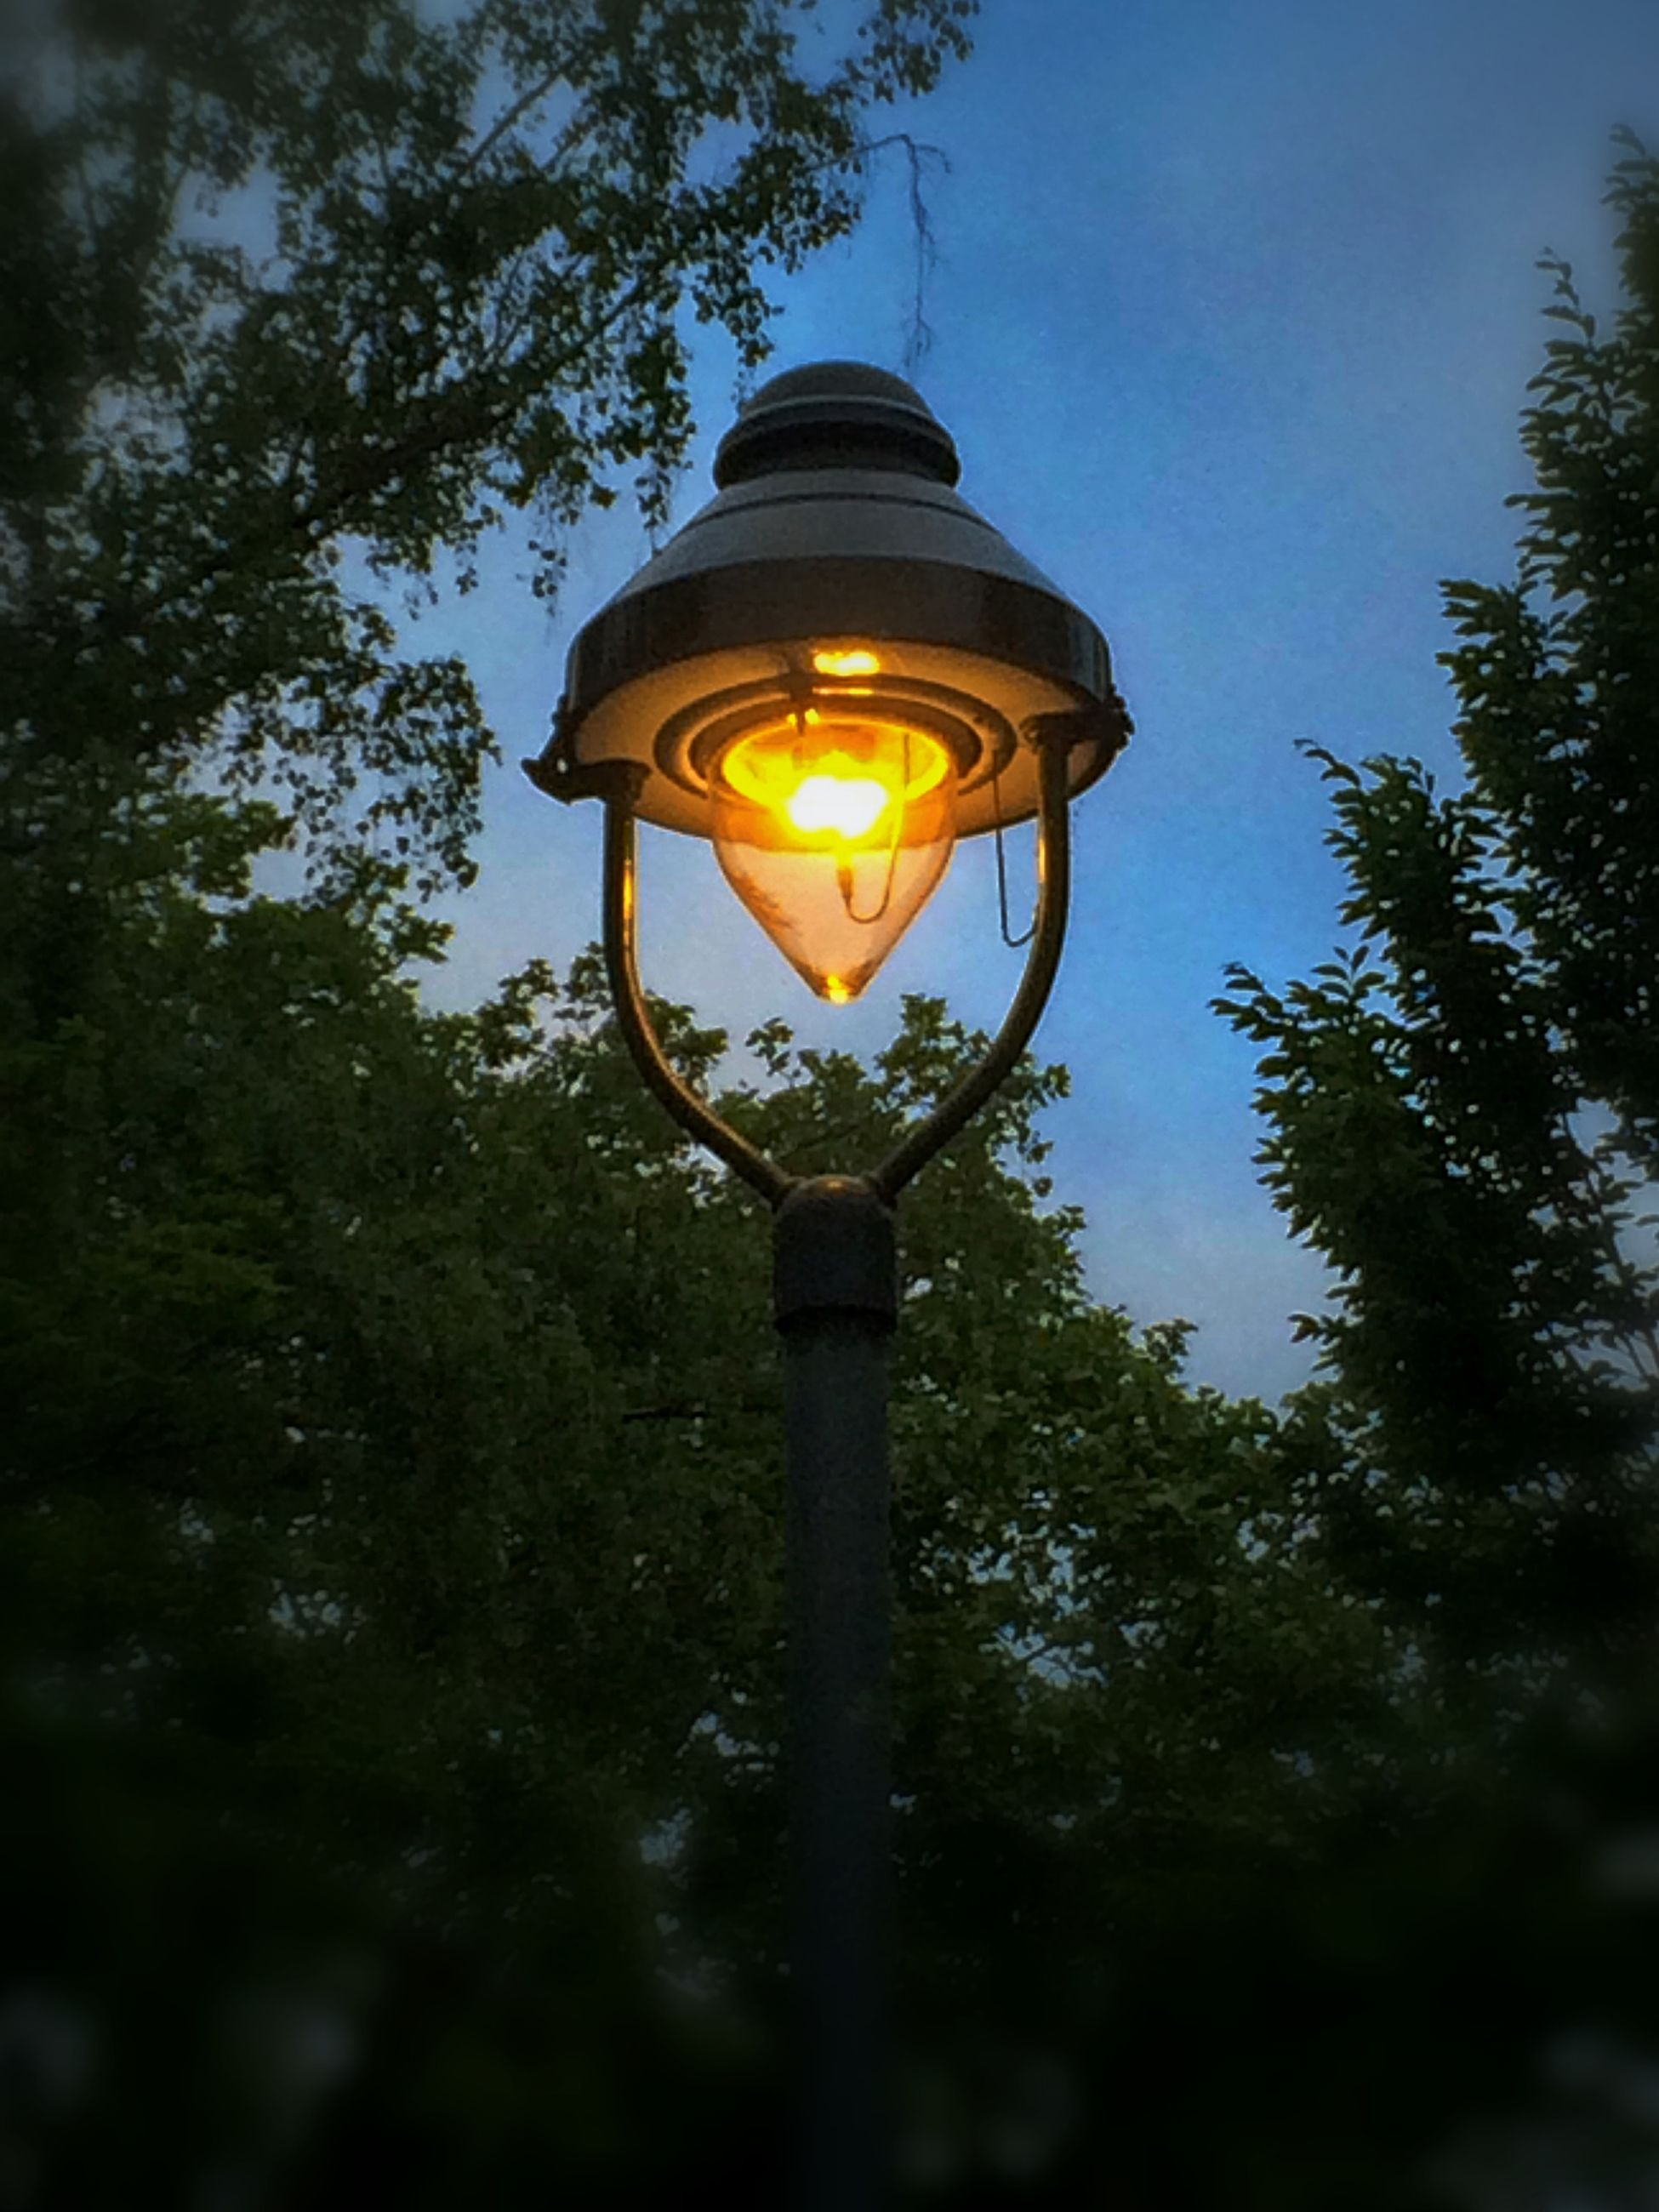 lighting equipment, illuminated, street light, tree, low angle view, electricity, electric light, lantern, light bulb, sky, glowing, lamp post, electric lamp, clear sky, lamp, no people, dusk, outdoors, nature, growth